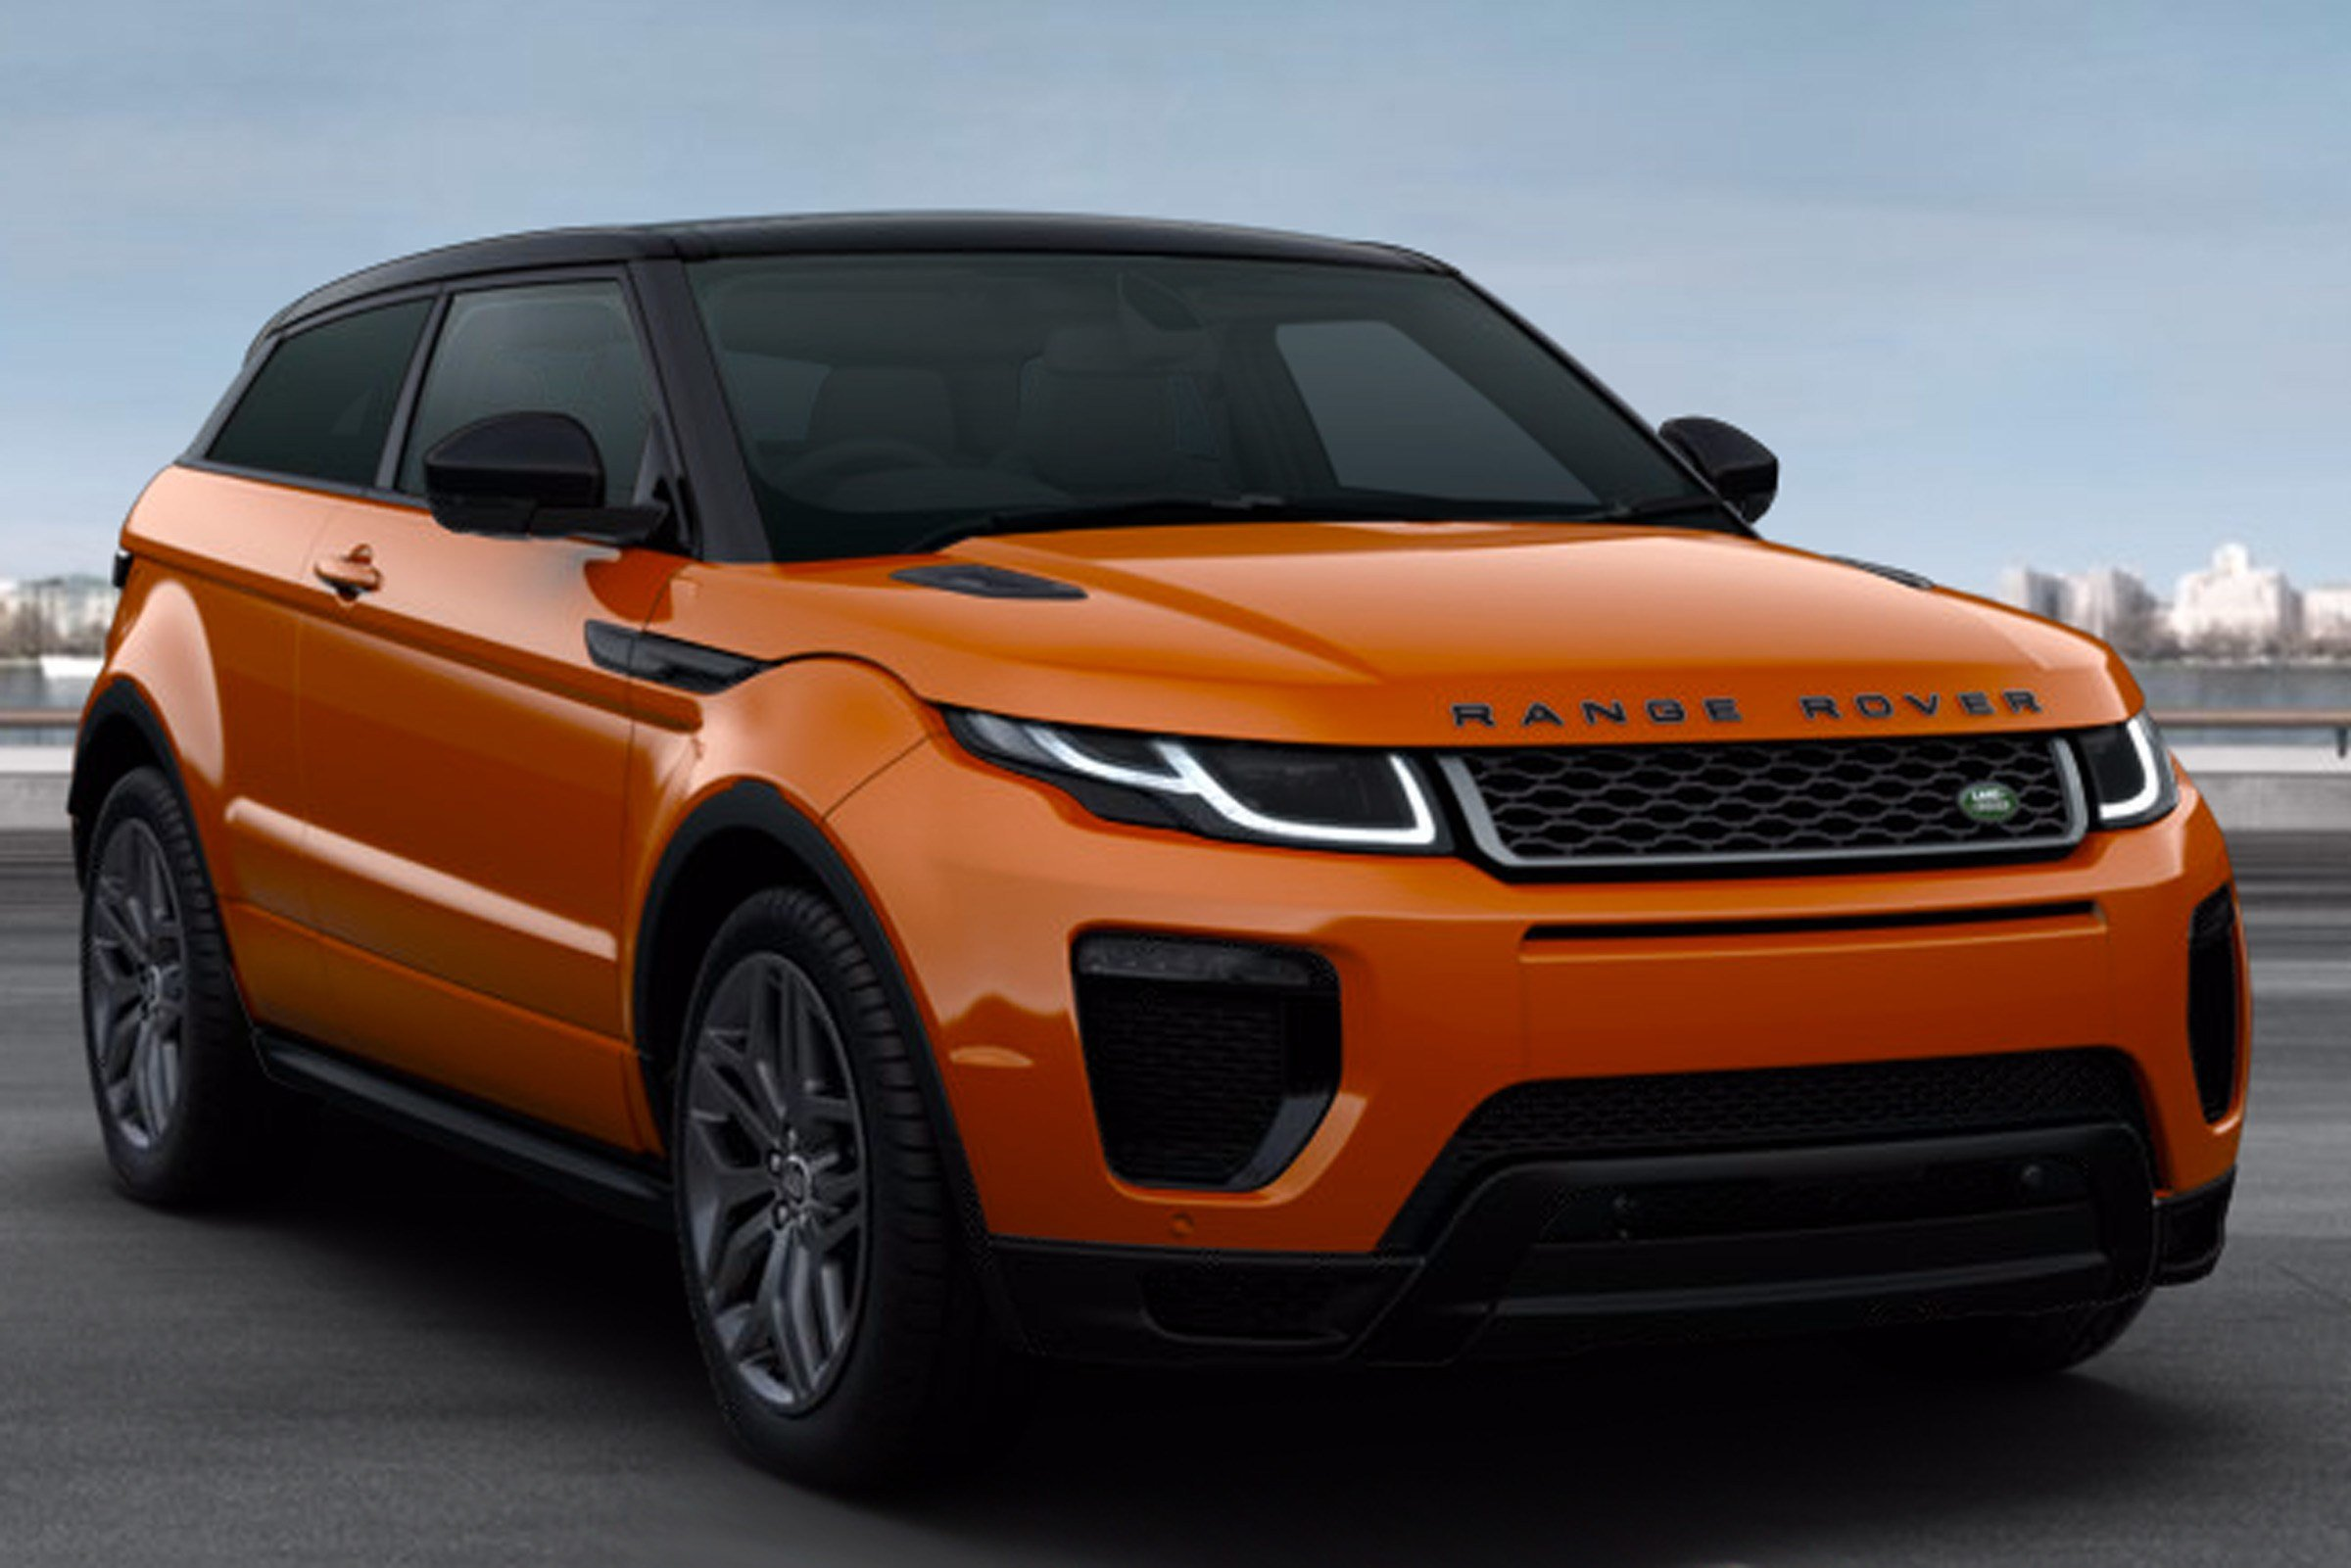 New Land Rover Configurator The £71K Range Rover Evoque Car On This Month